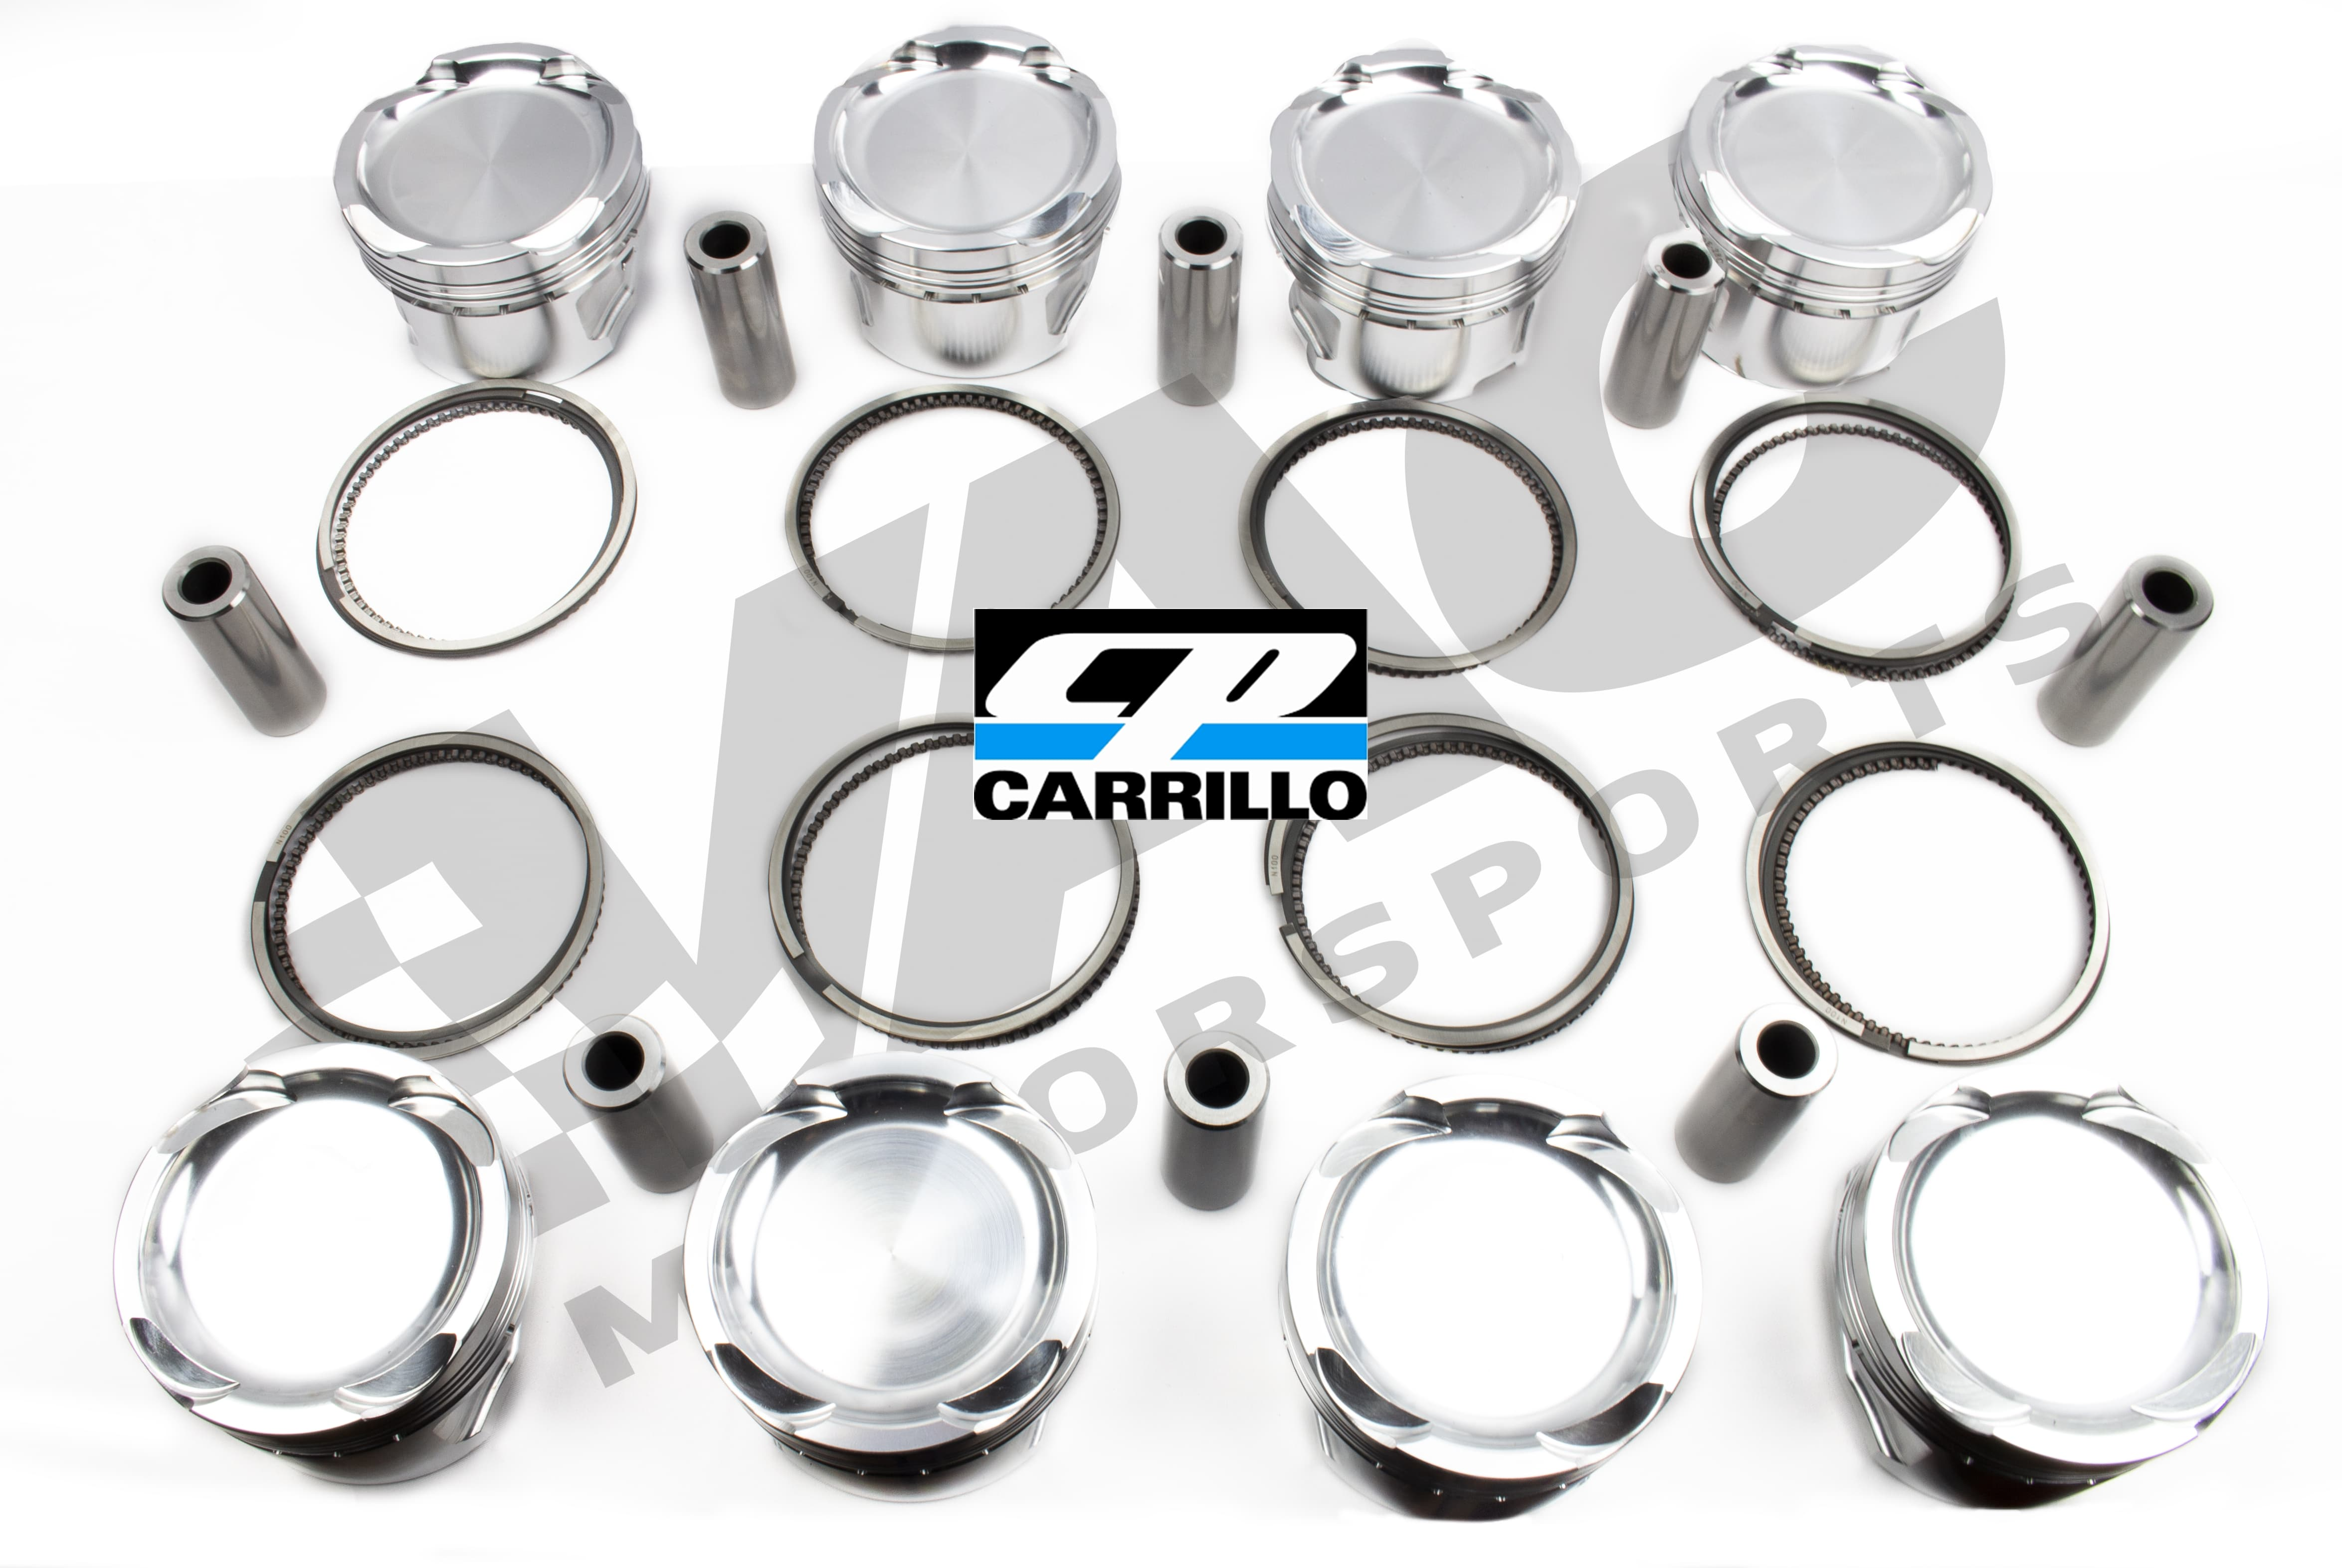 CP-Carrillo Forged Piston Set (BMW M60) THUMBNAIL